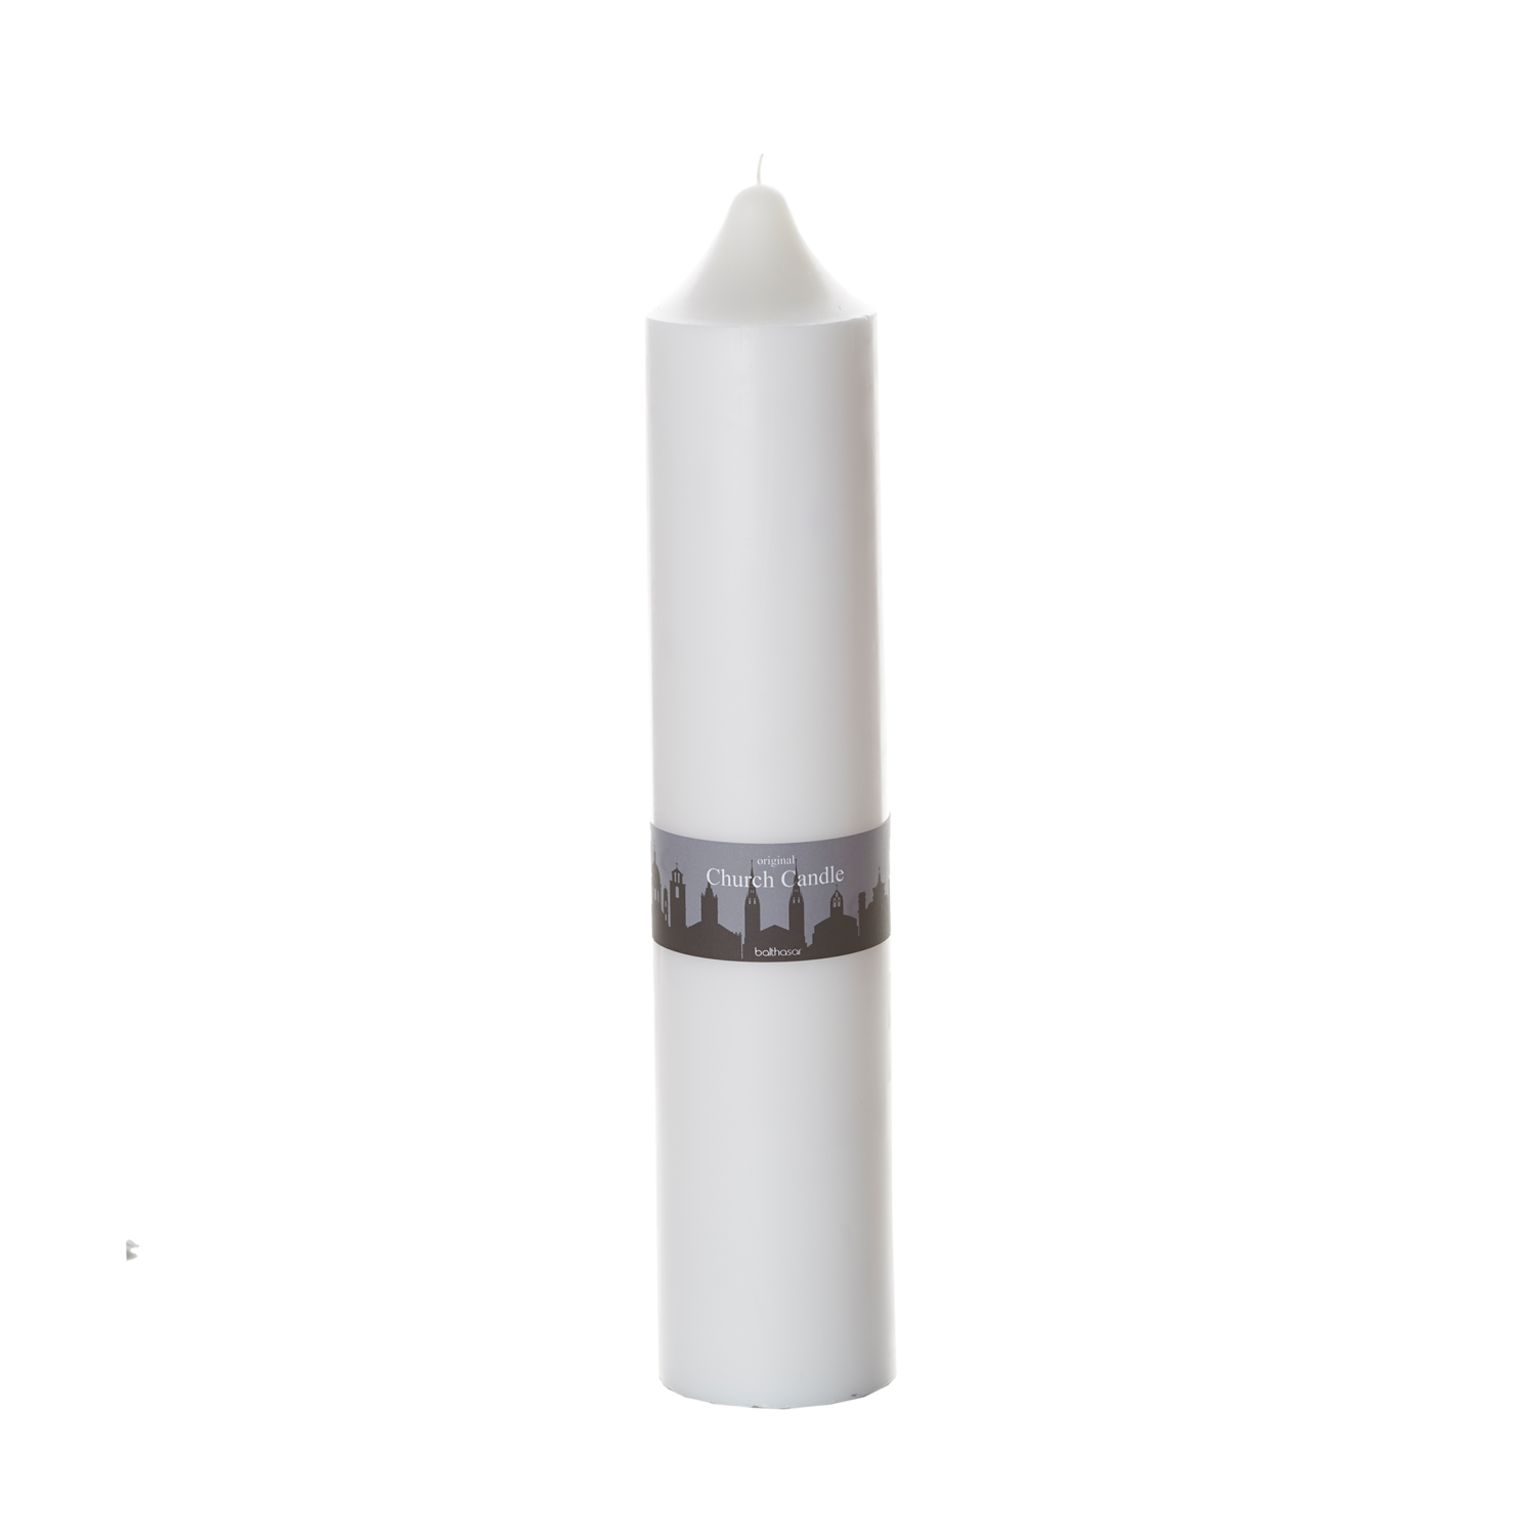 Church Candle weiss 10 x 50cm